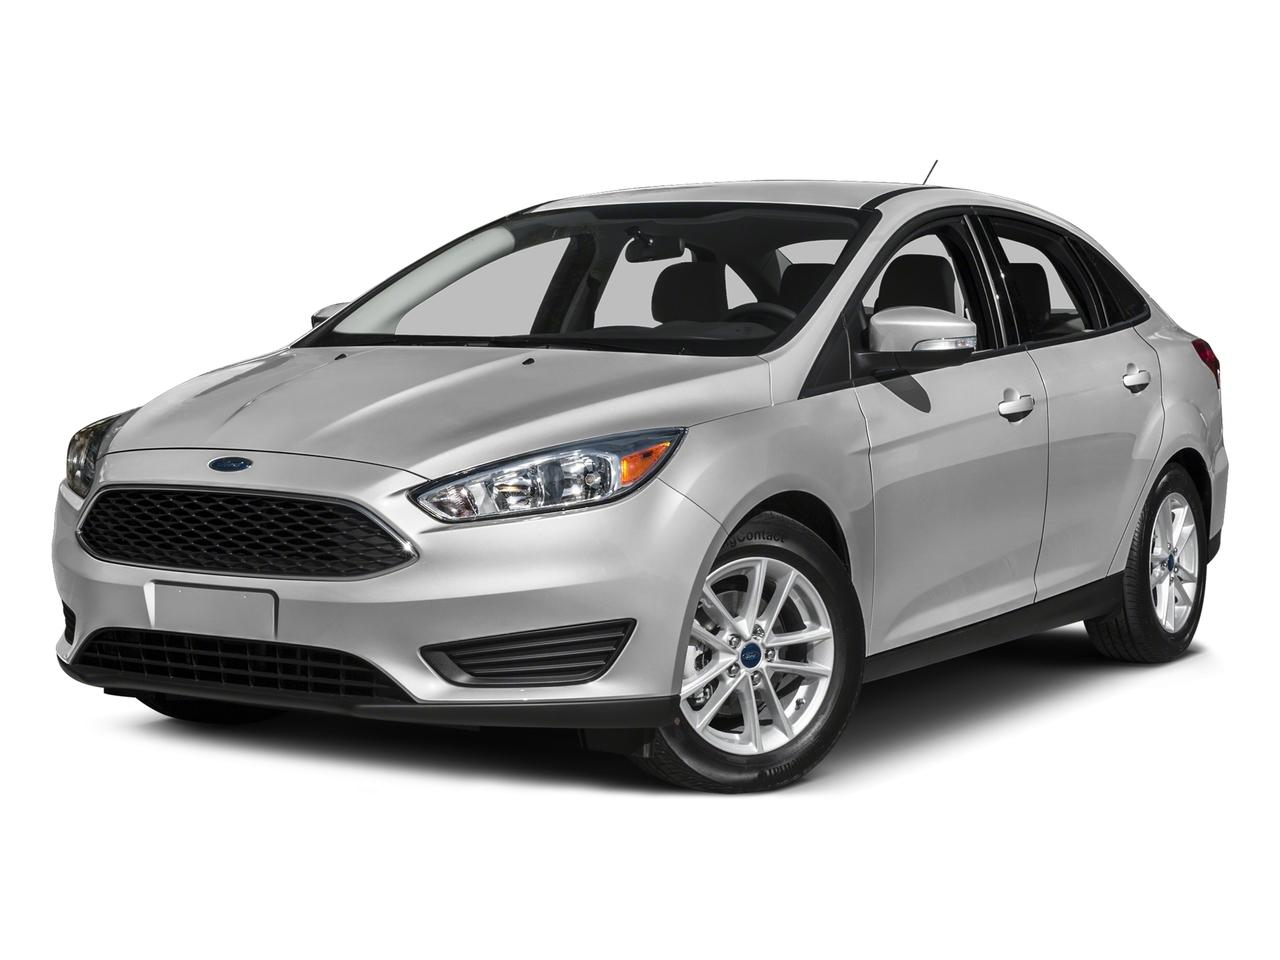 2015 Ford Focus Vehicle Photo in San Antonio, TX 78209